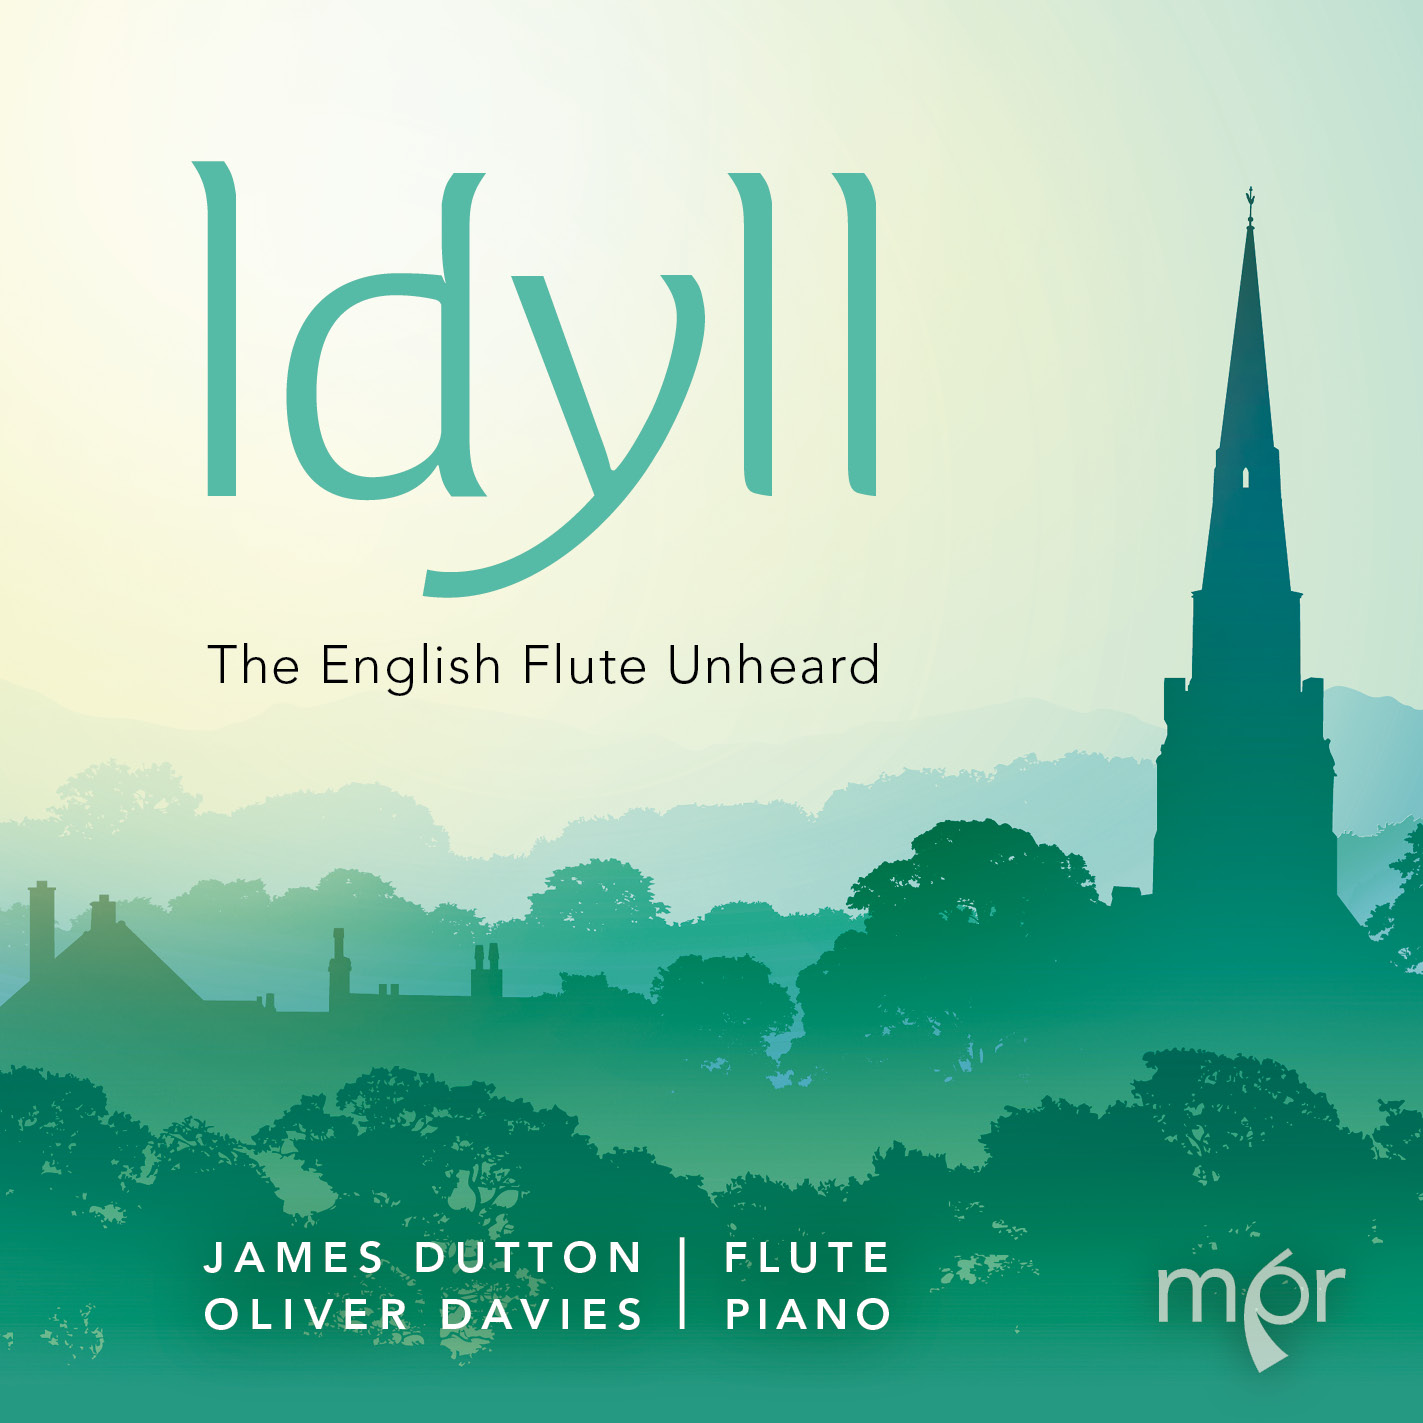 Idyll by James Dutton